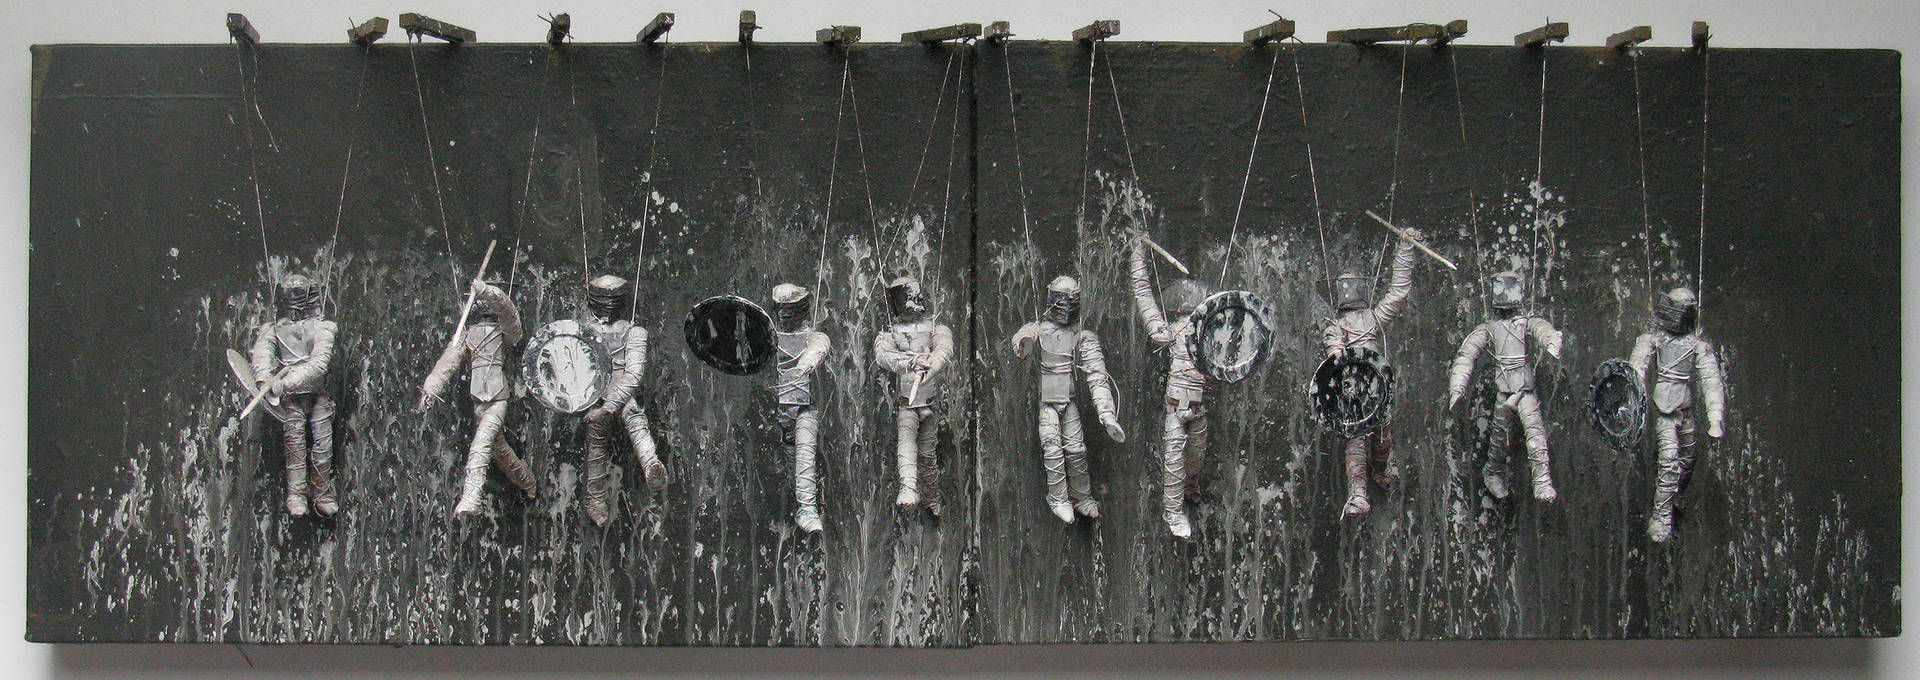 Mixed-media artwork Ten Fight Time, 1999 by David  Maxim